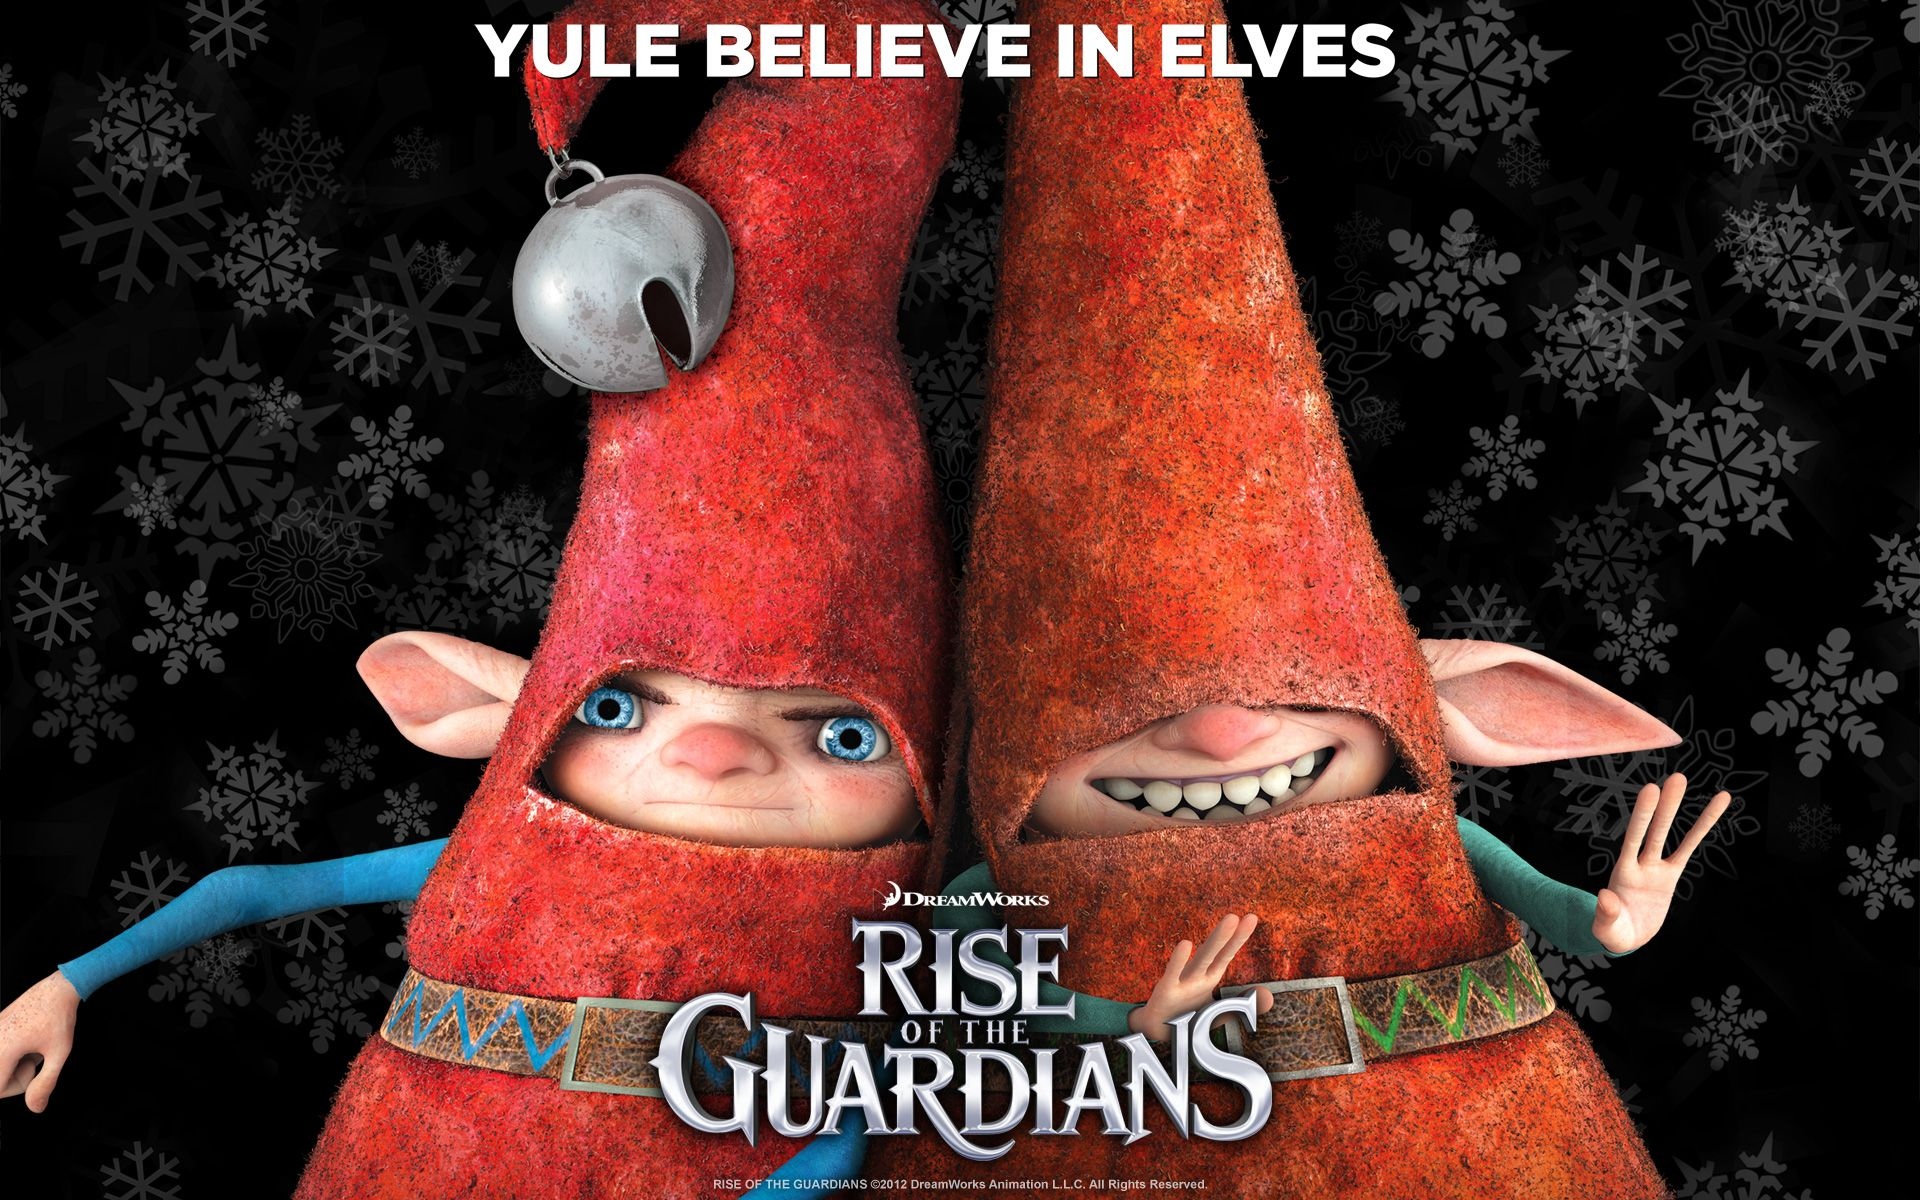 rise of the guardians photos | Rise of the Guardians Wallpapers